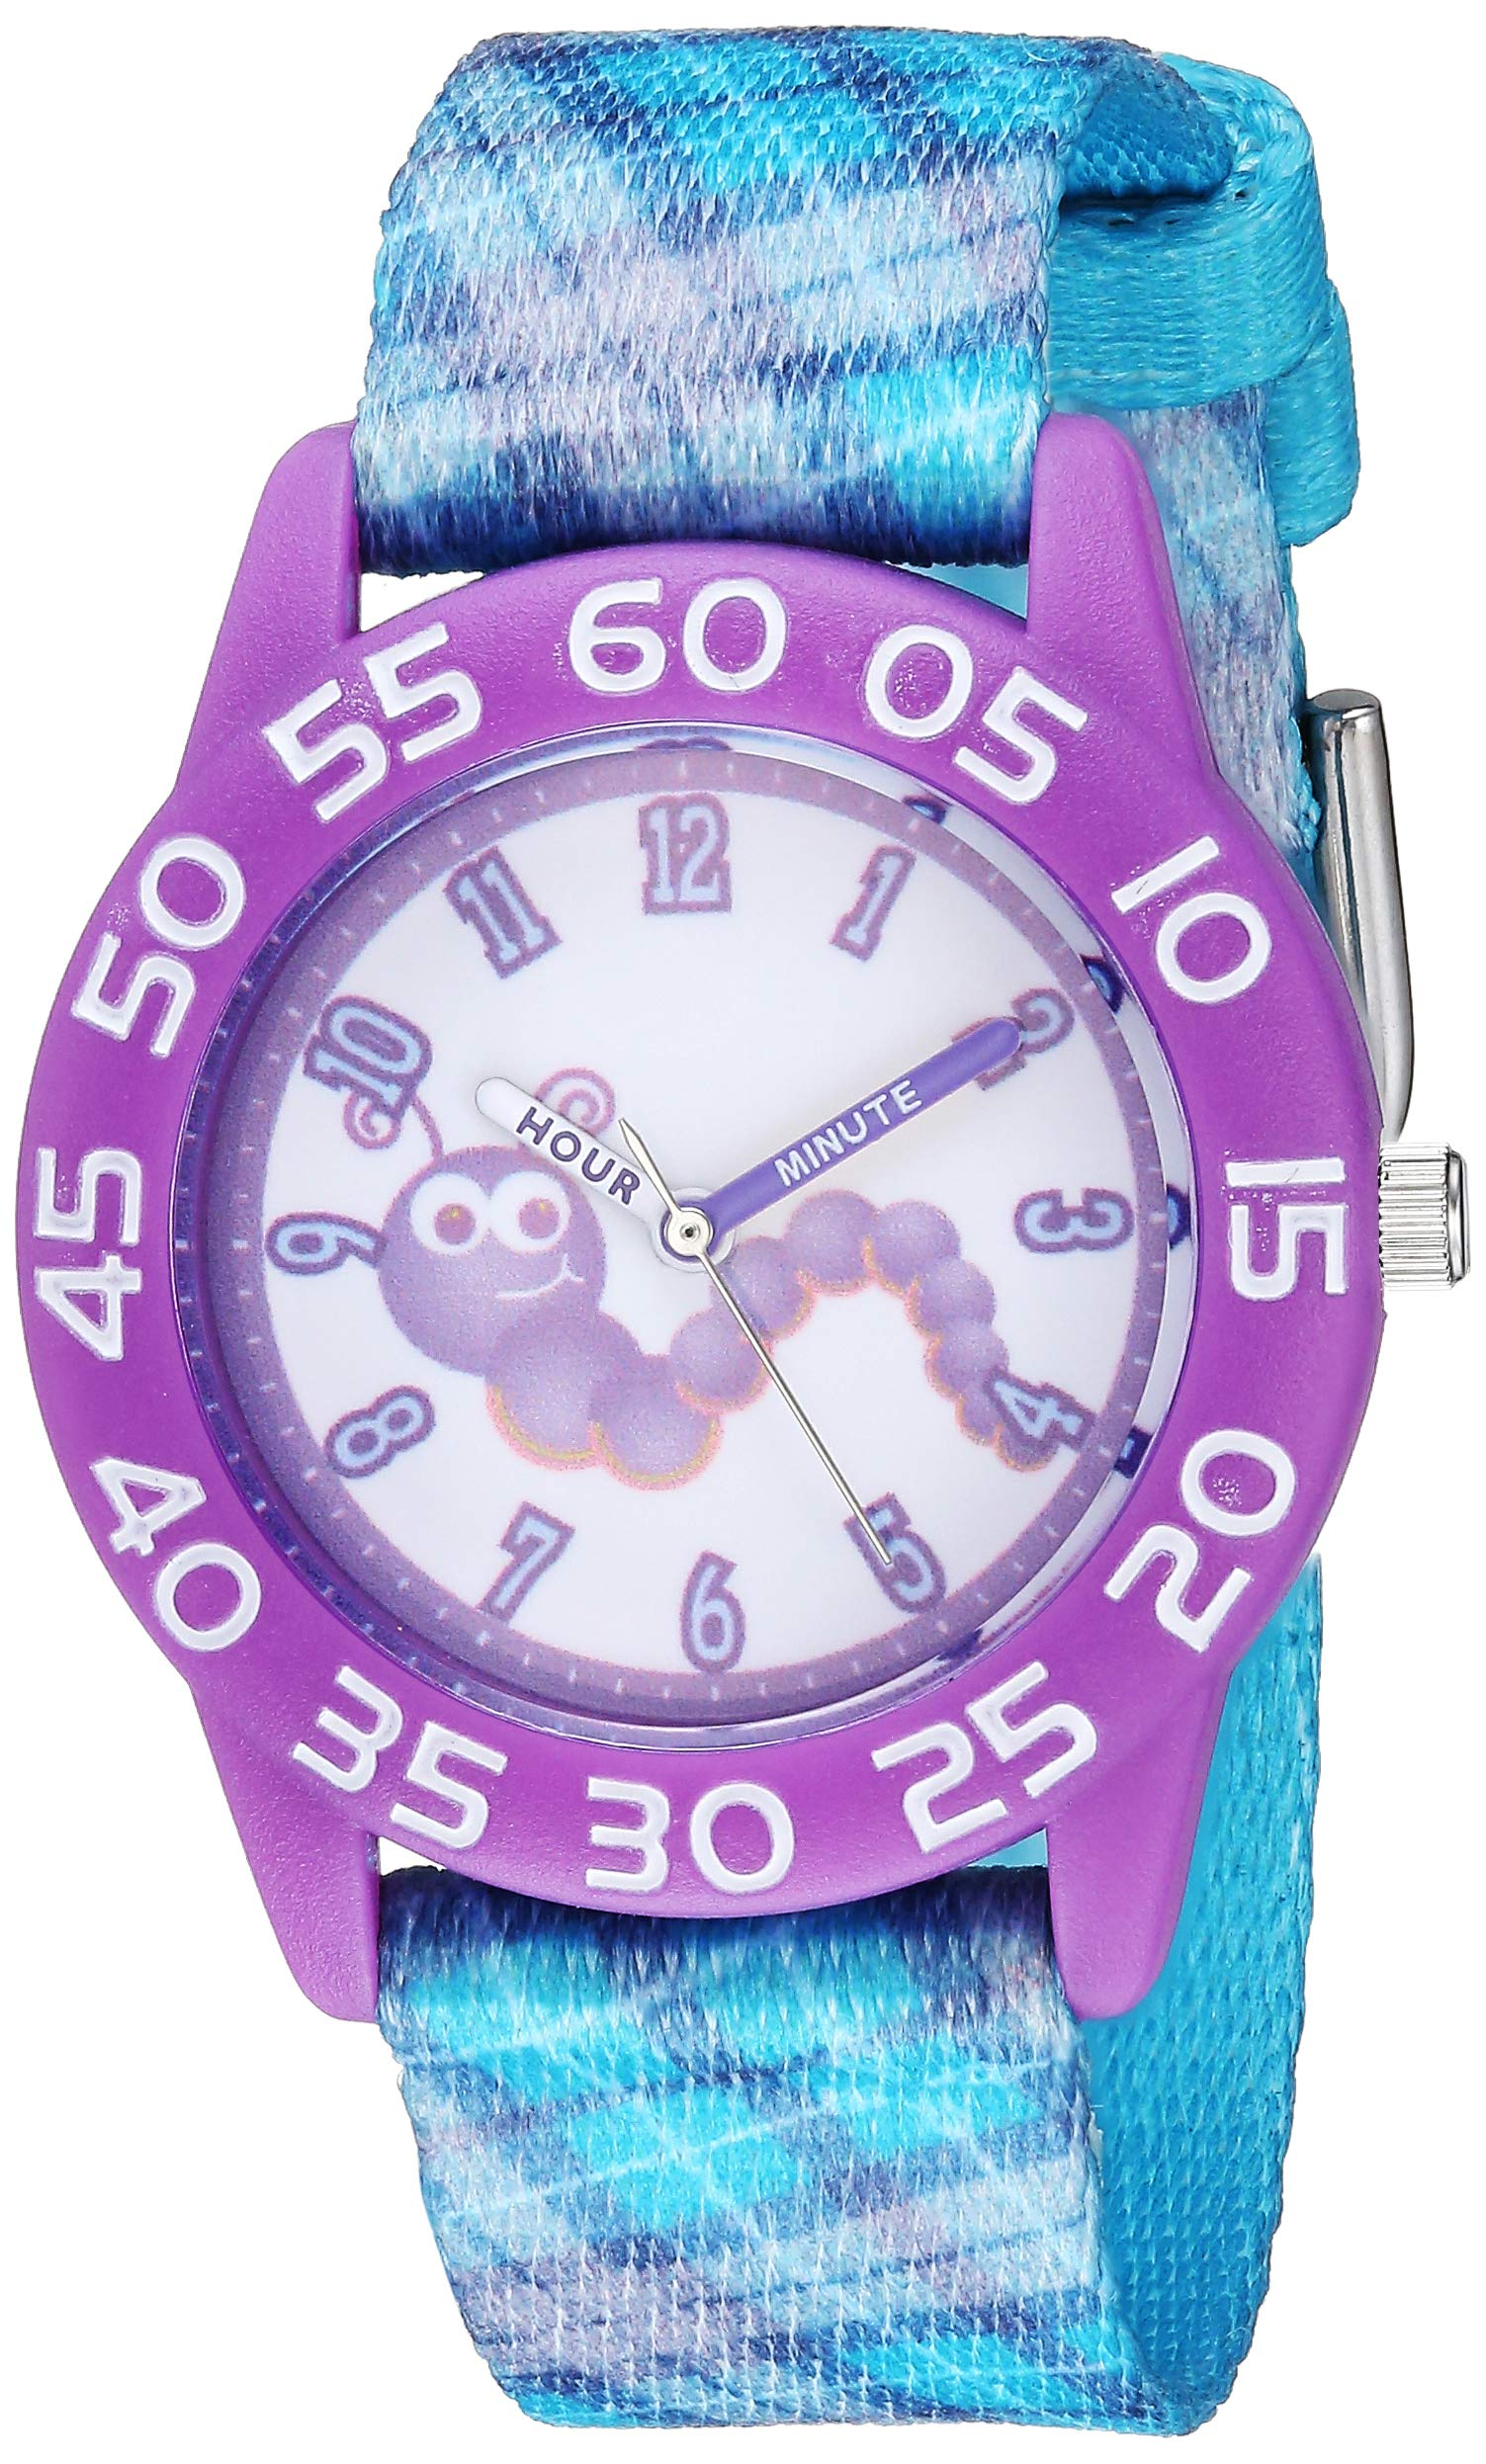 Red Balloon Girls Stainless Steel Analog-Quartz Watch with Nylon Strap, Blue, 16 (Model: WRB000068) by Red Balloon